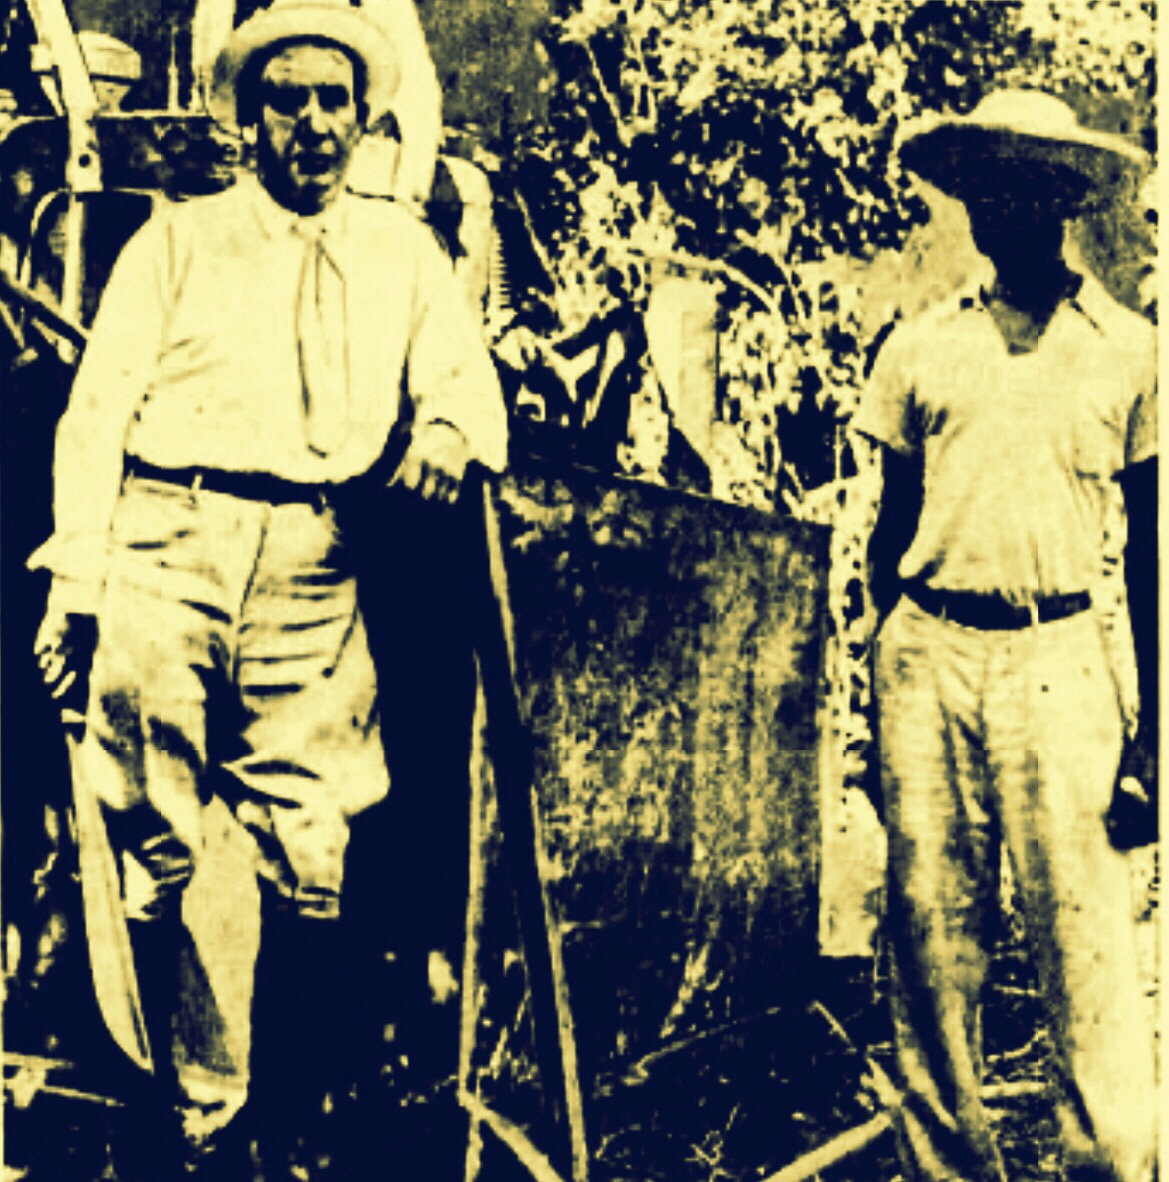 Whatever Happened To The Slave Relics Found By Sir Harry Oakes As He Cleared His Thousands of Acres In Nassau 1938